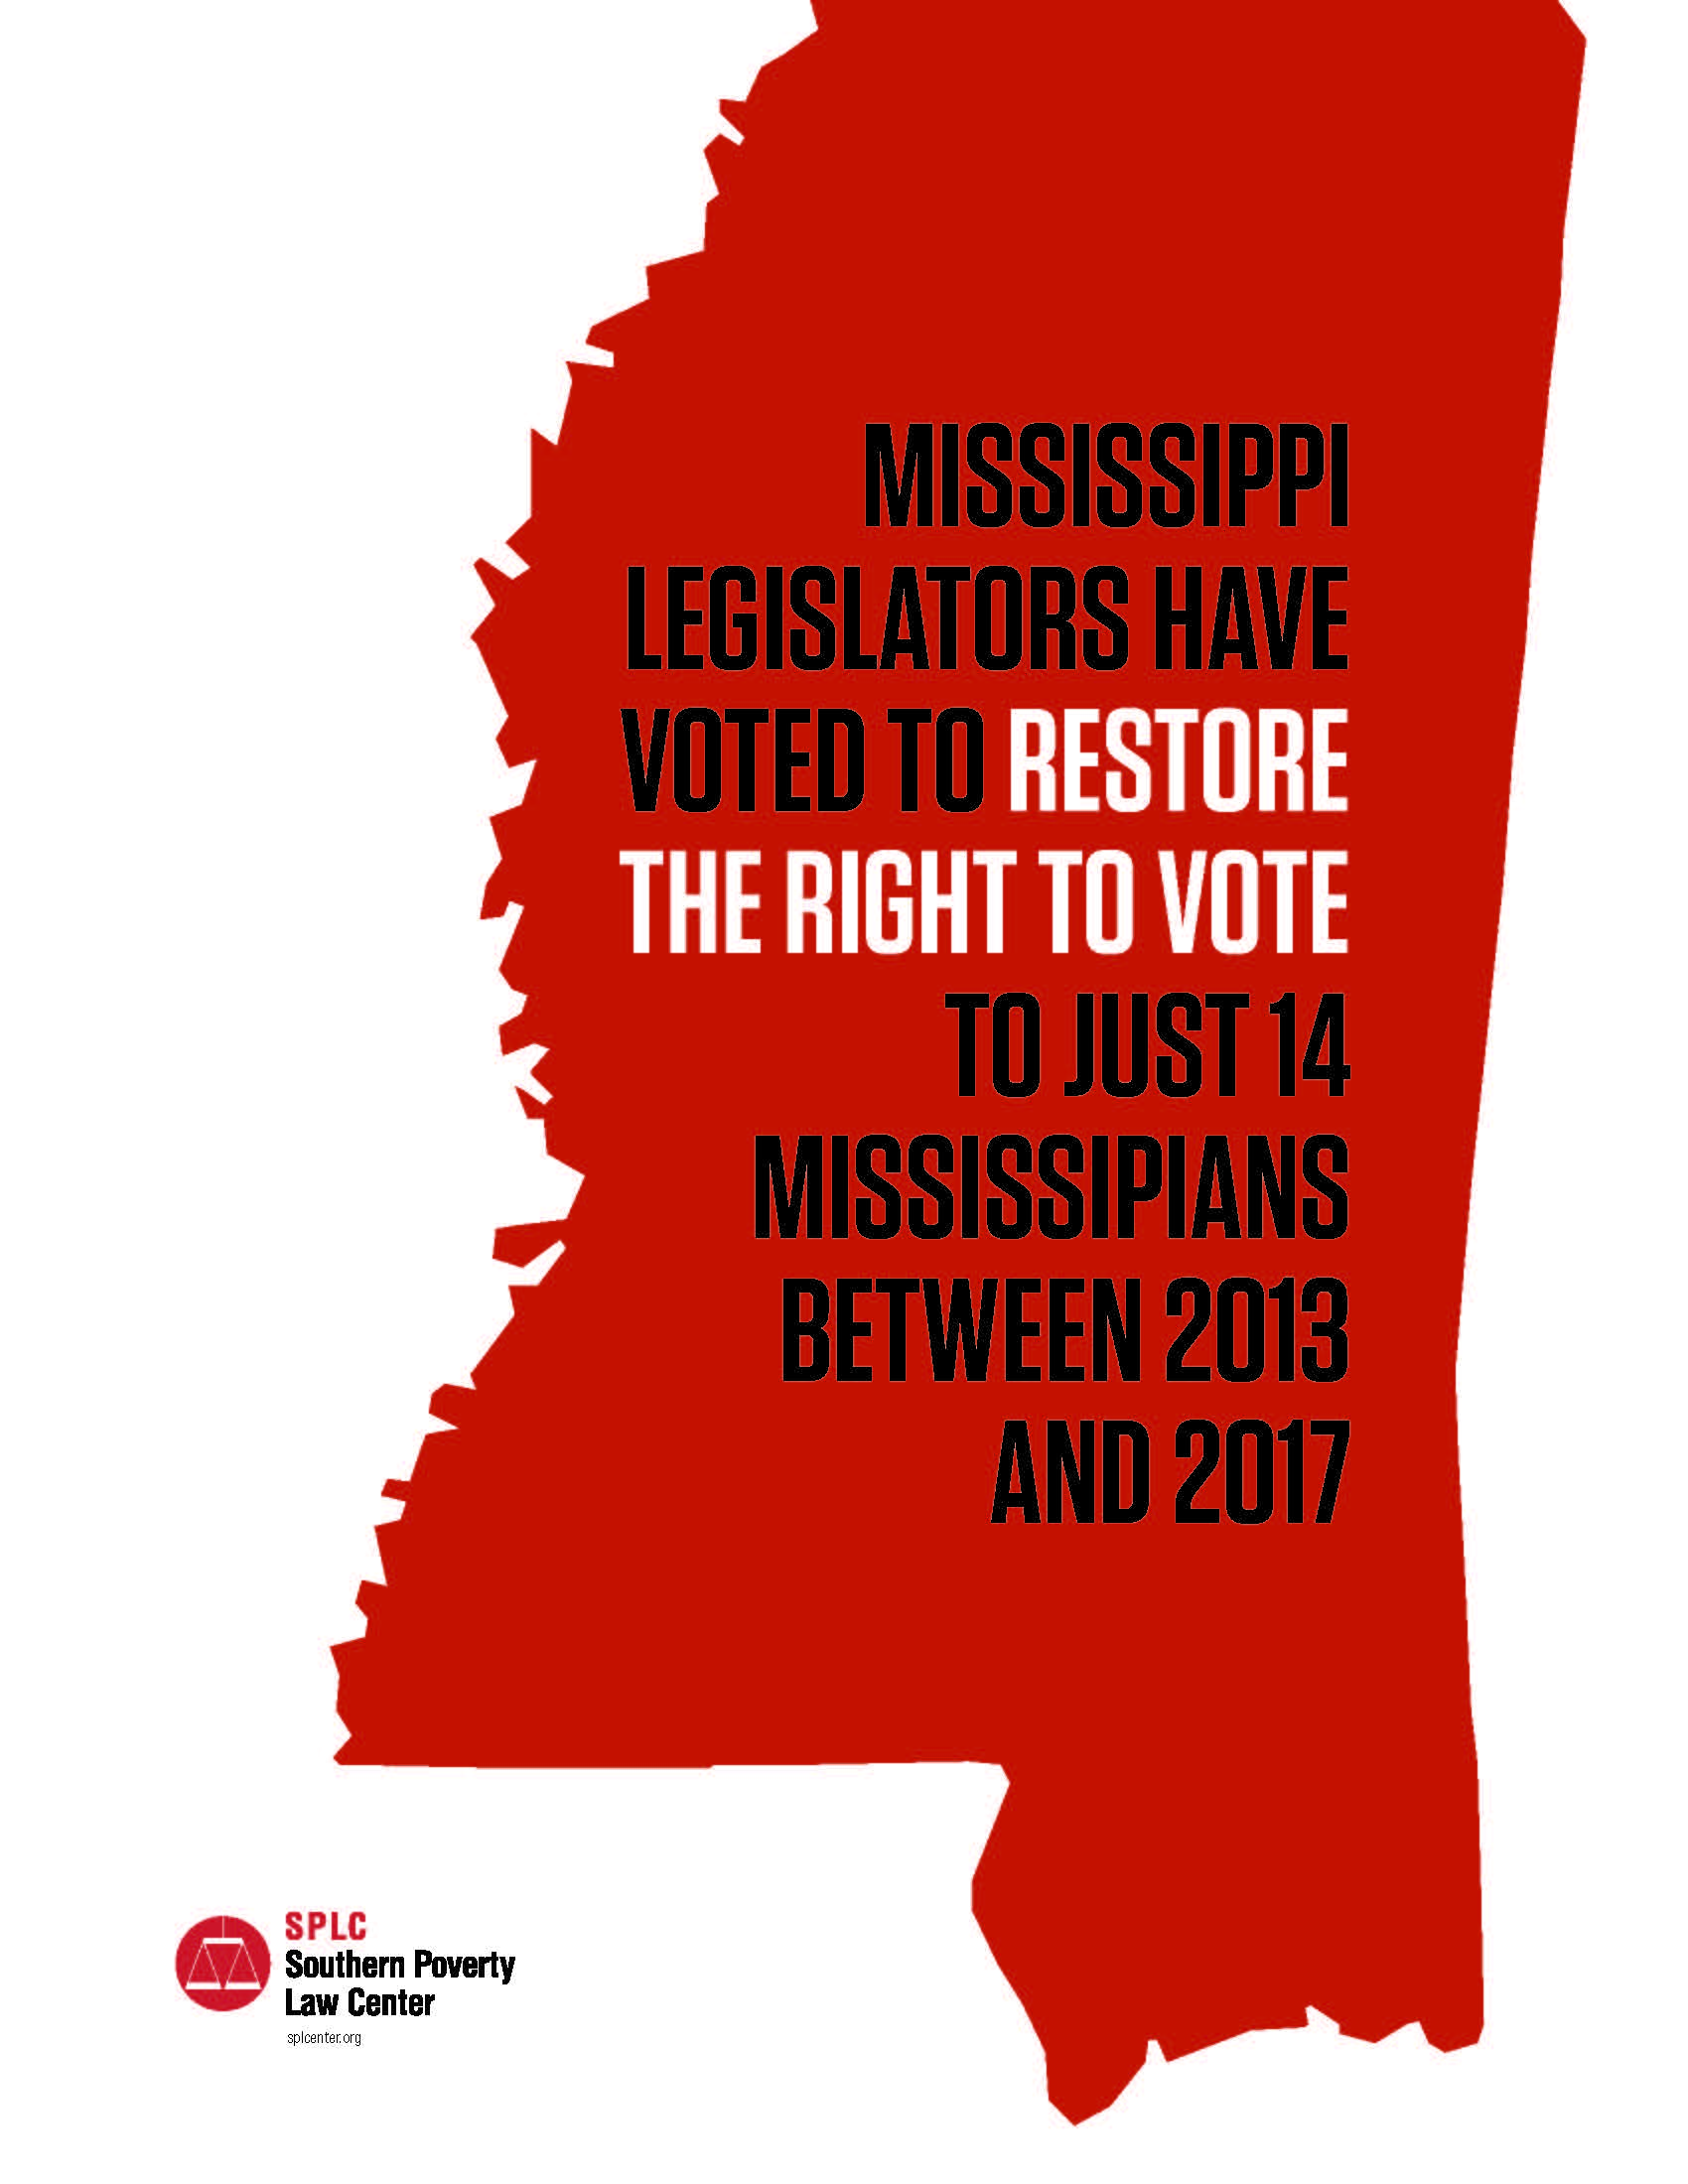 Lawsuit Alleges Mississippi Deprives >> Splc Sues To Restore Mississippi Citizens Voting Rights